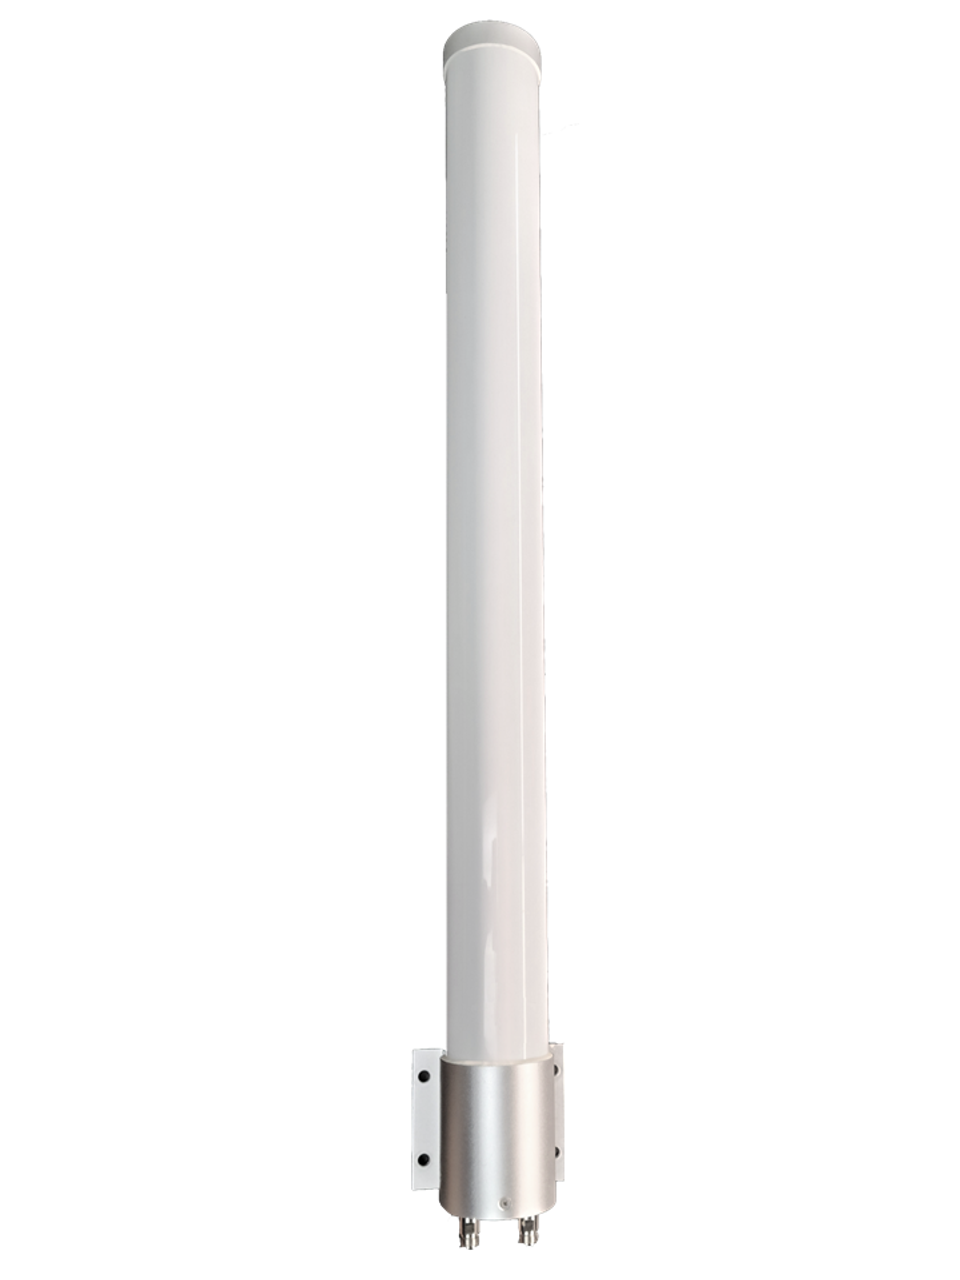 M39T T-Mobile (Band 71 Optimized) MIMO 2 x Cellular 4G LTE CBRS 5G NR M2M IoT Antenna w/Bracket Mount - 2 x N Female